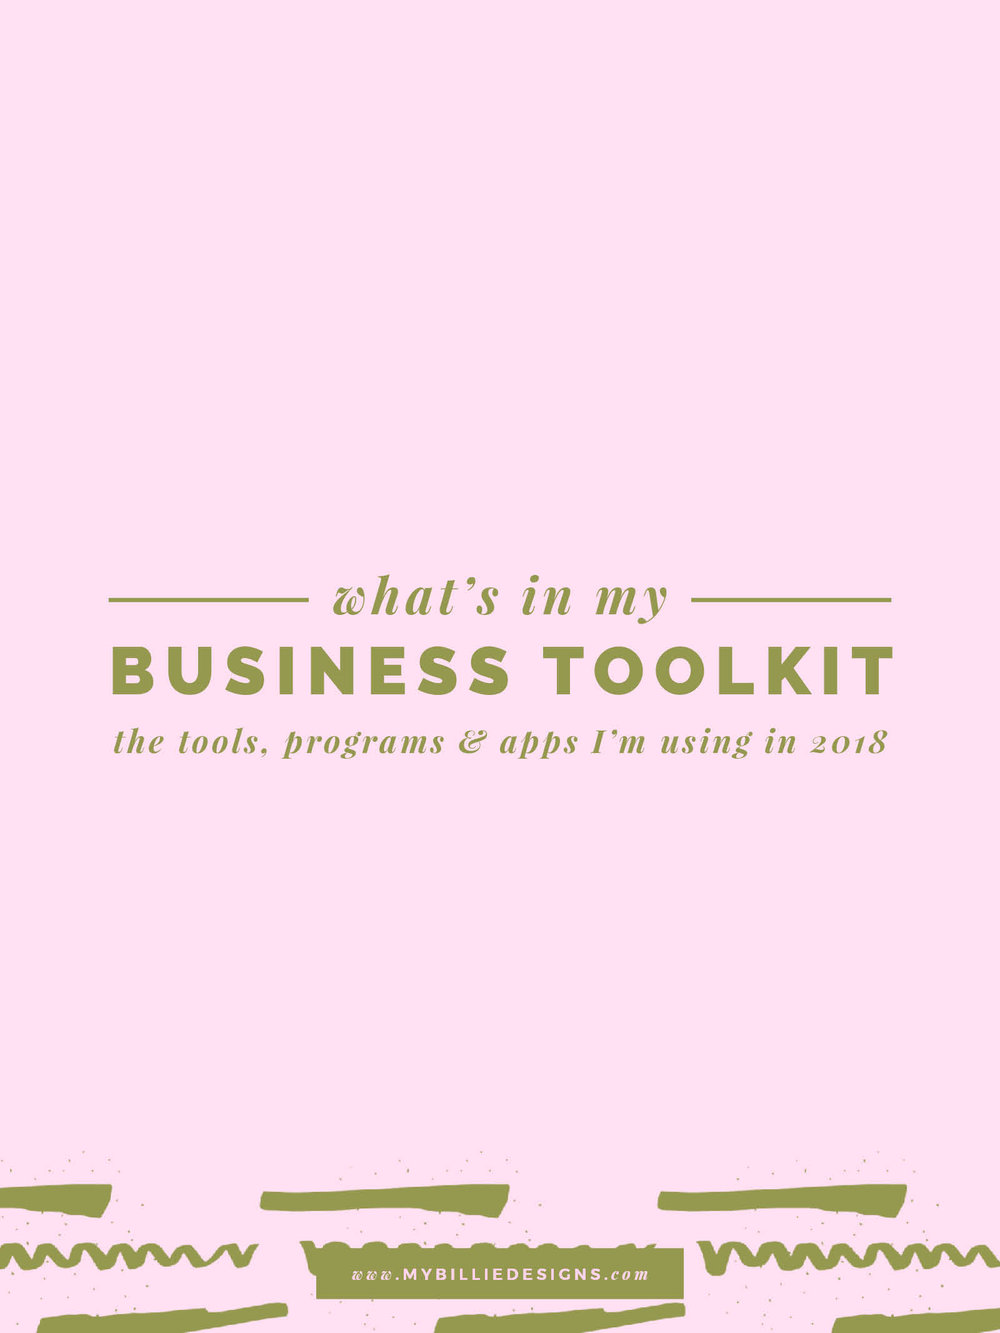 My Business Toolkit What Tools Apps and Programs I'm Using in 2018